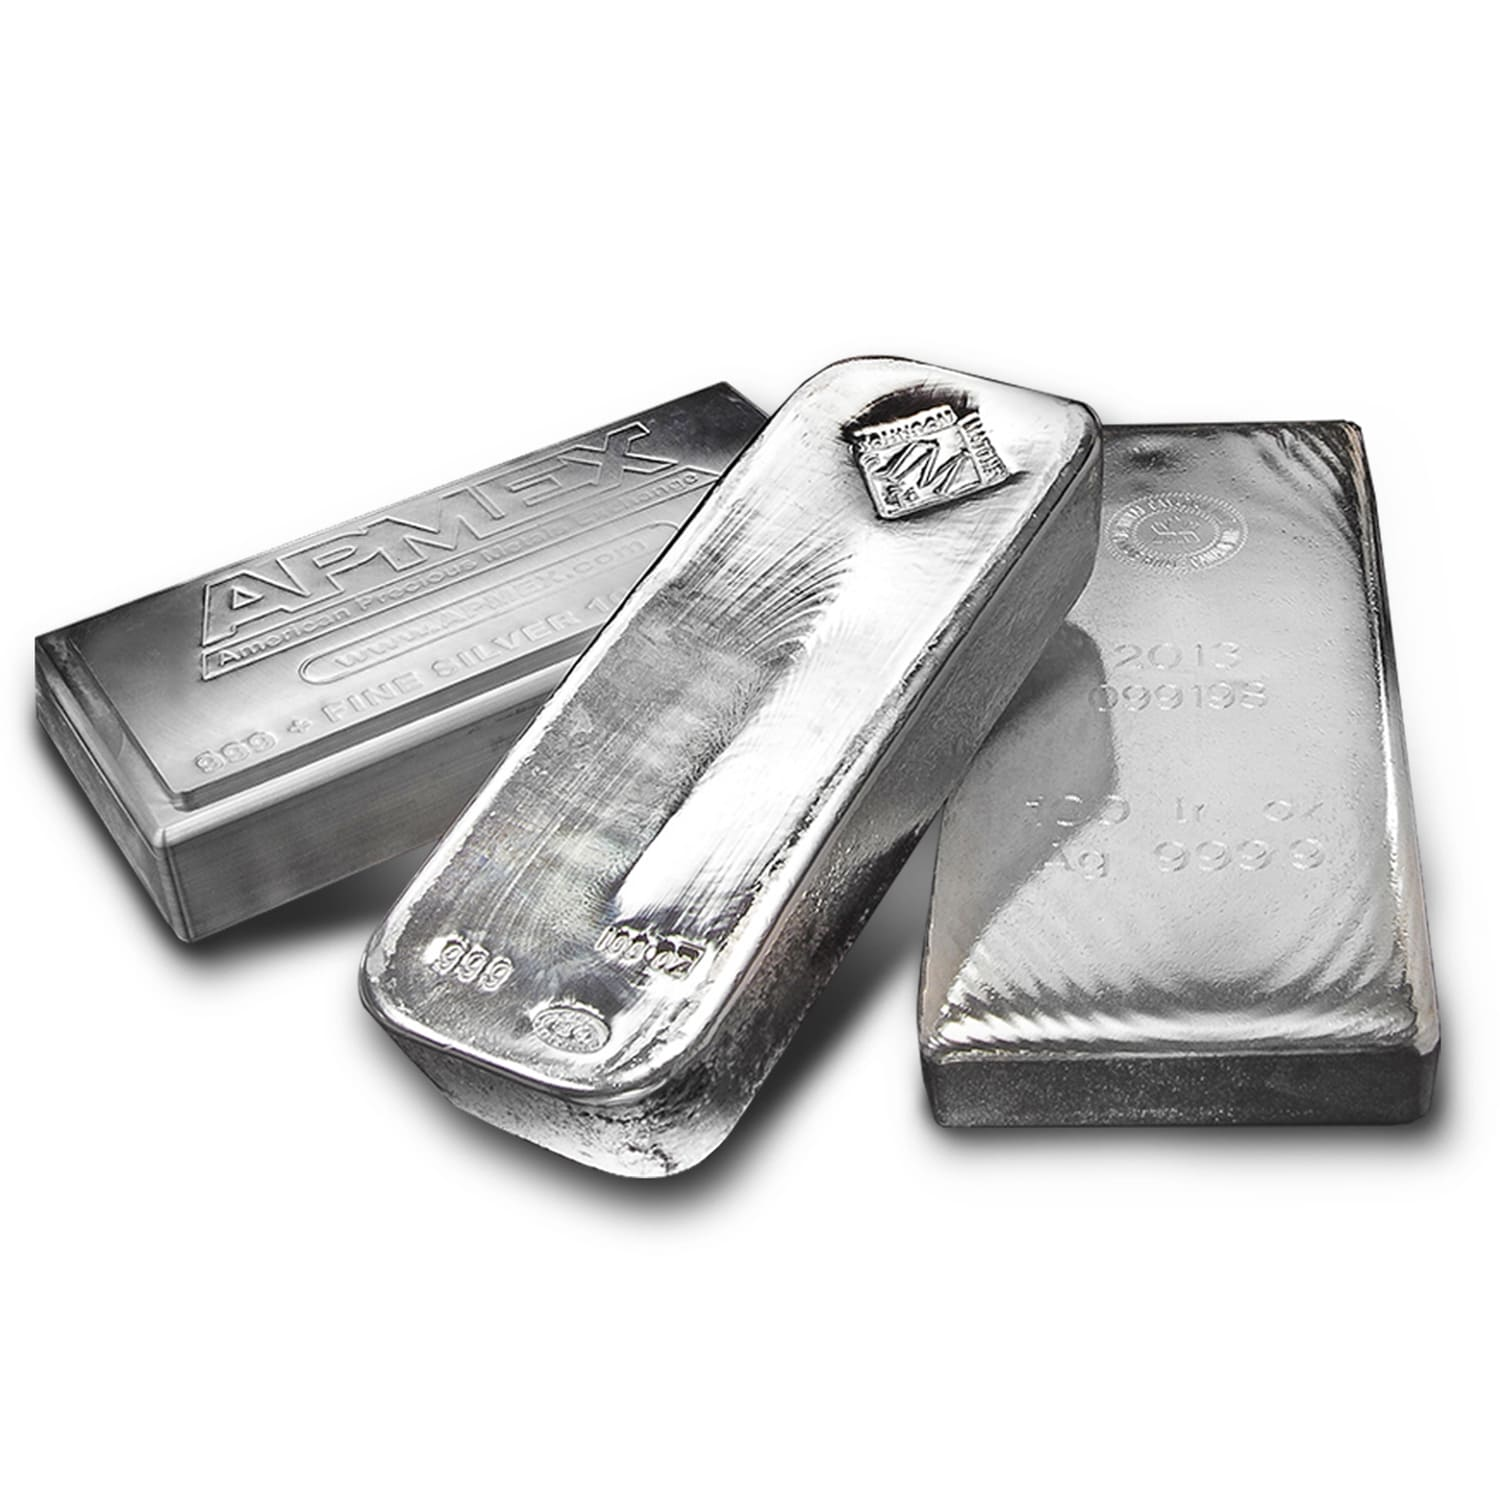 97.20 oz Silver Bar - Secondary Market